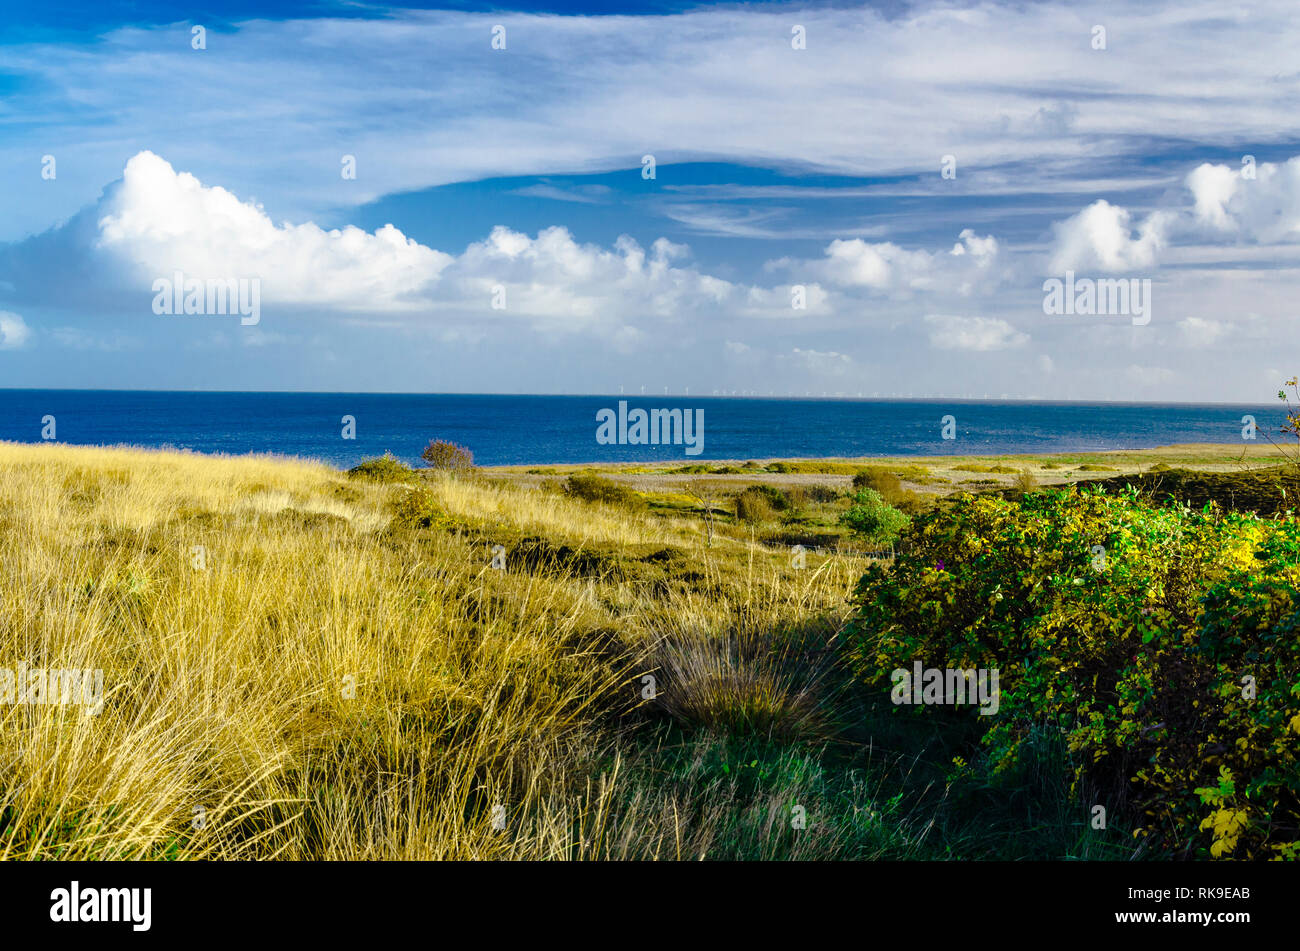 View from Sylt island onto the North Sea. - Stock Image